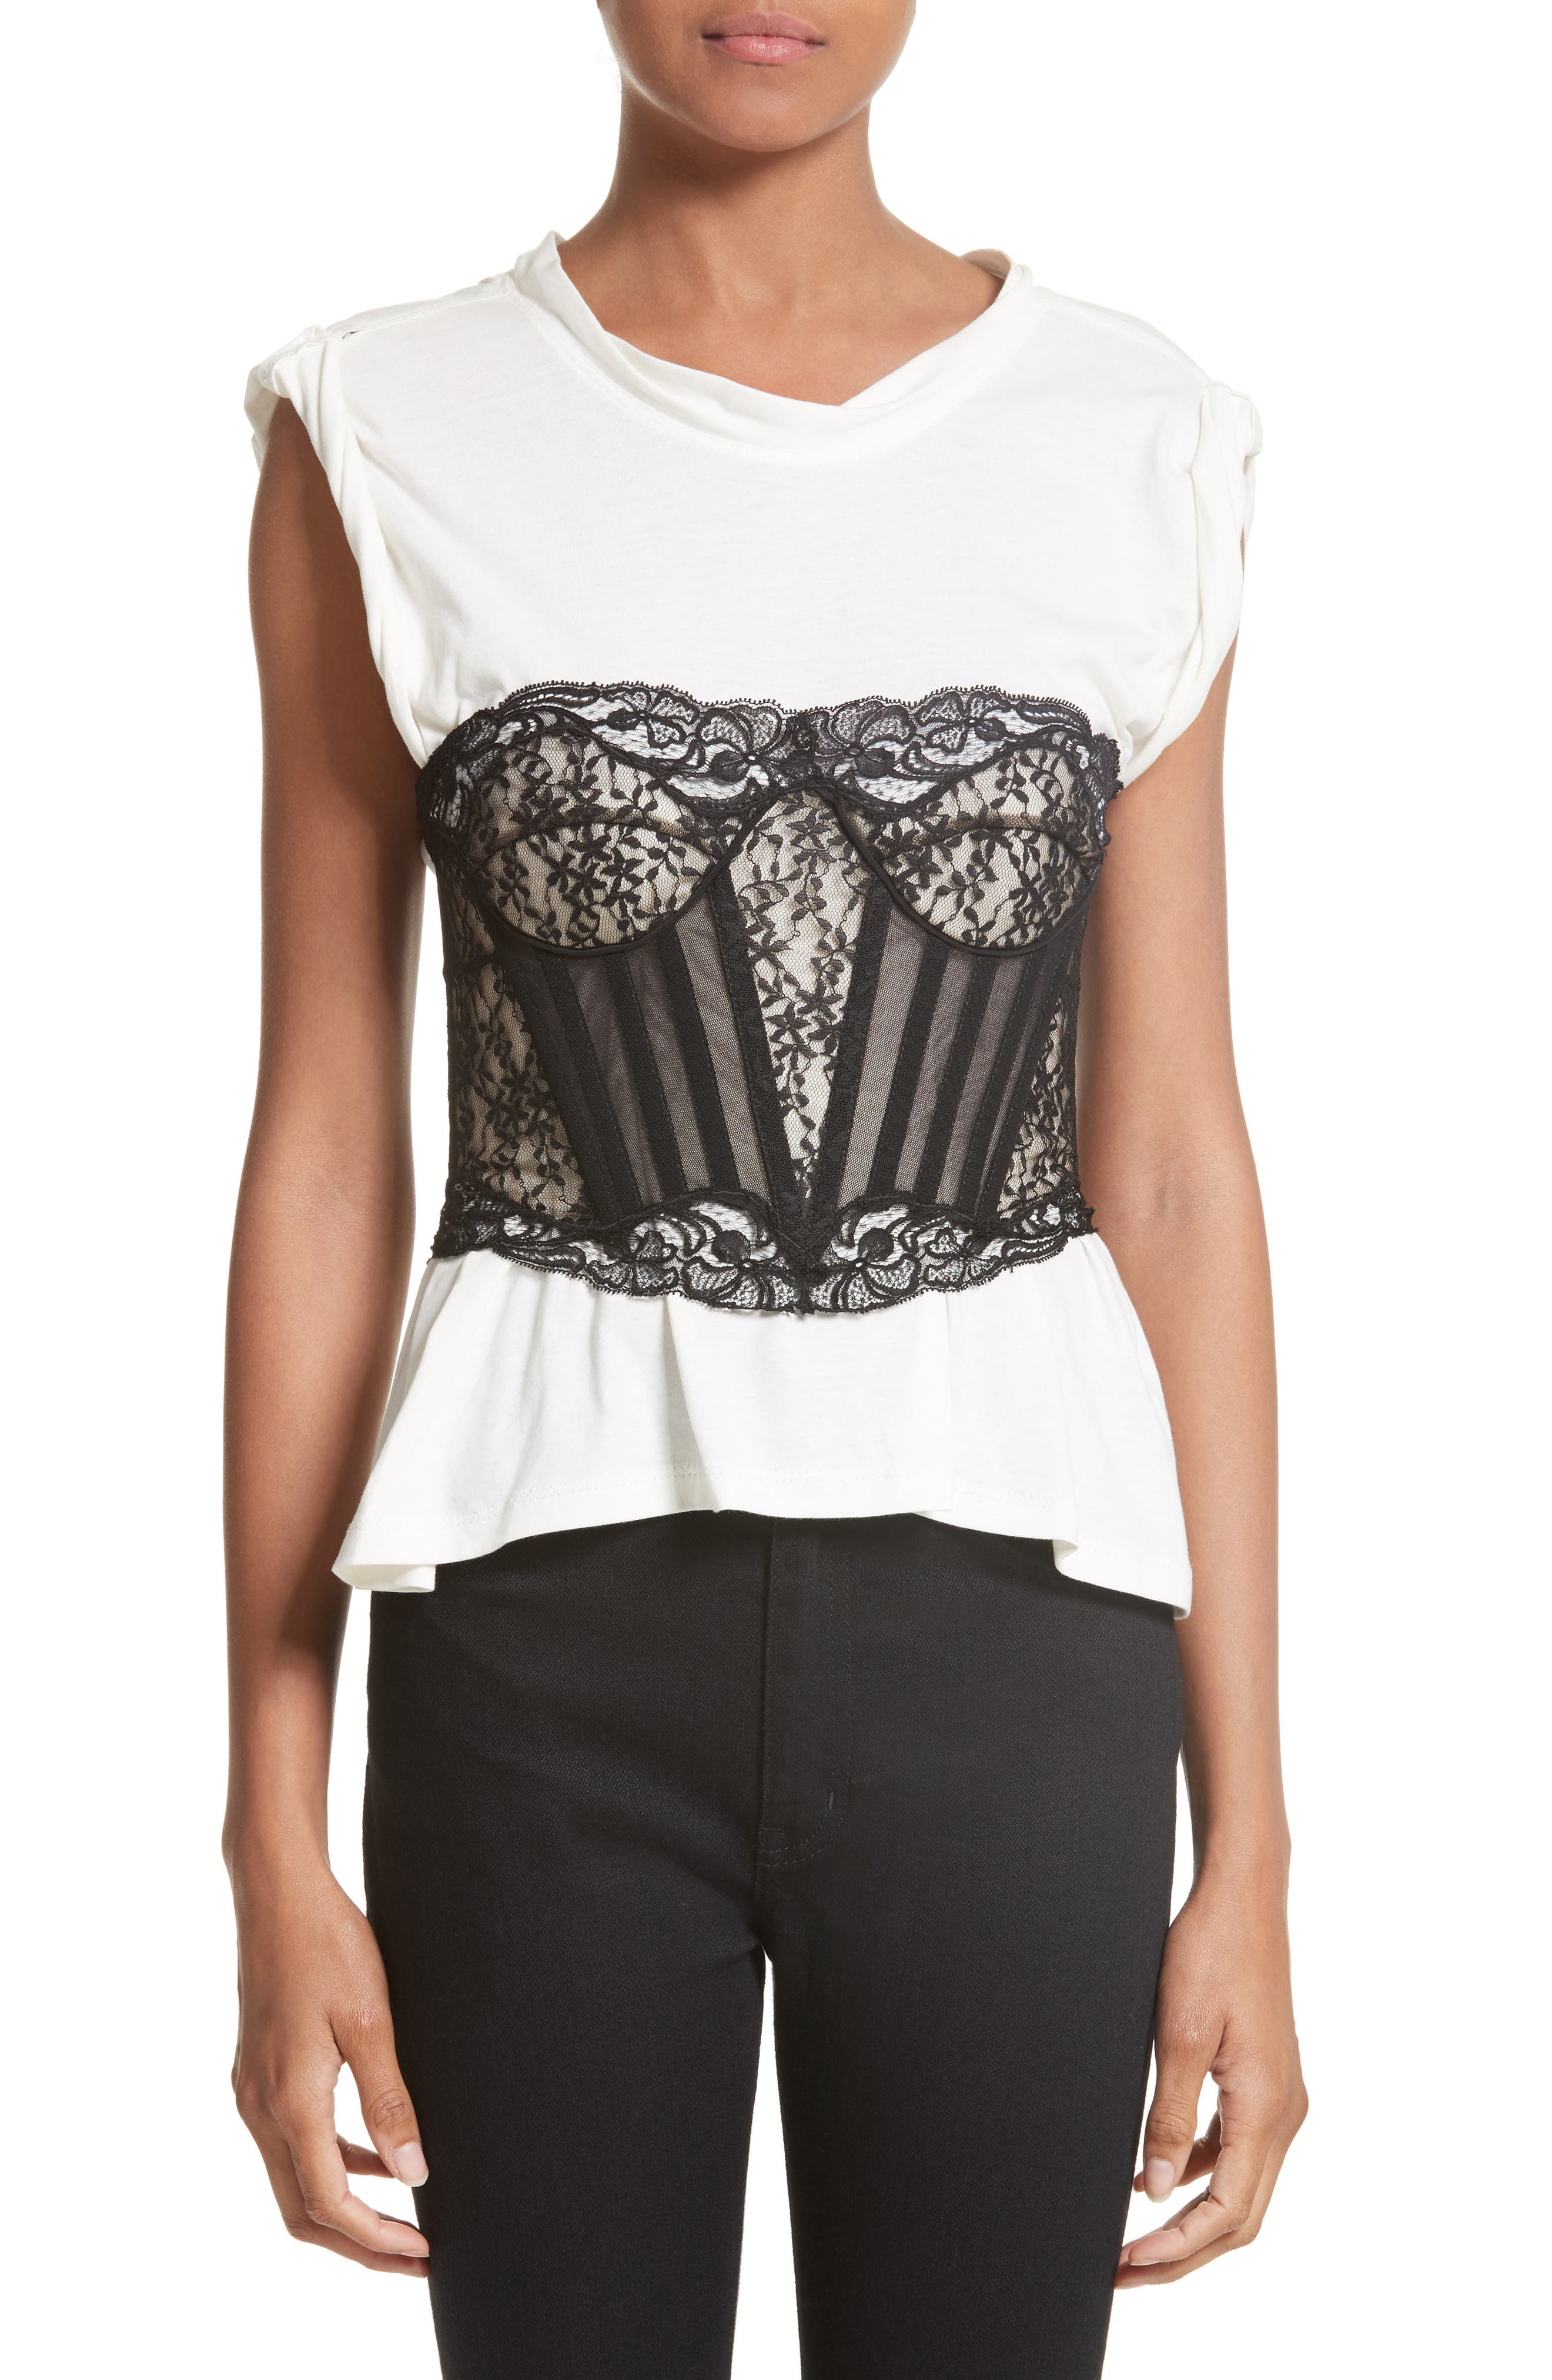 Cotton Top with Lace Bustier,                             Main thumbnail 1, color,                             900